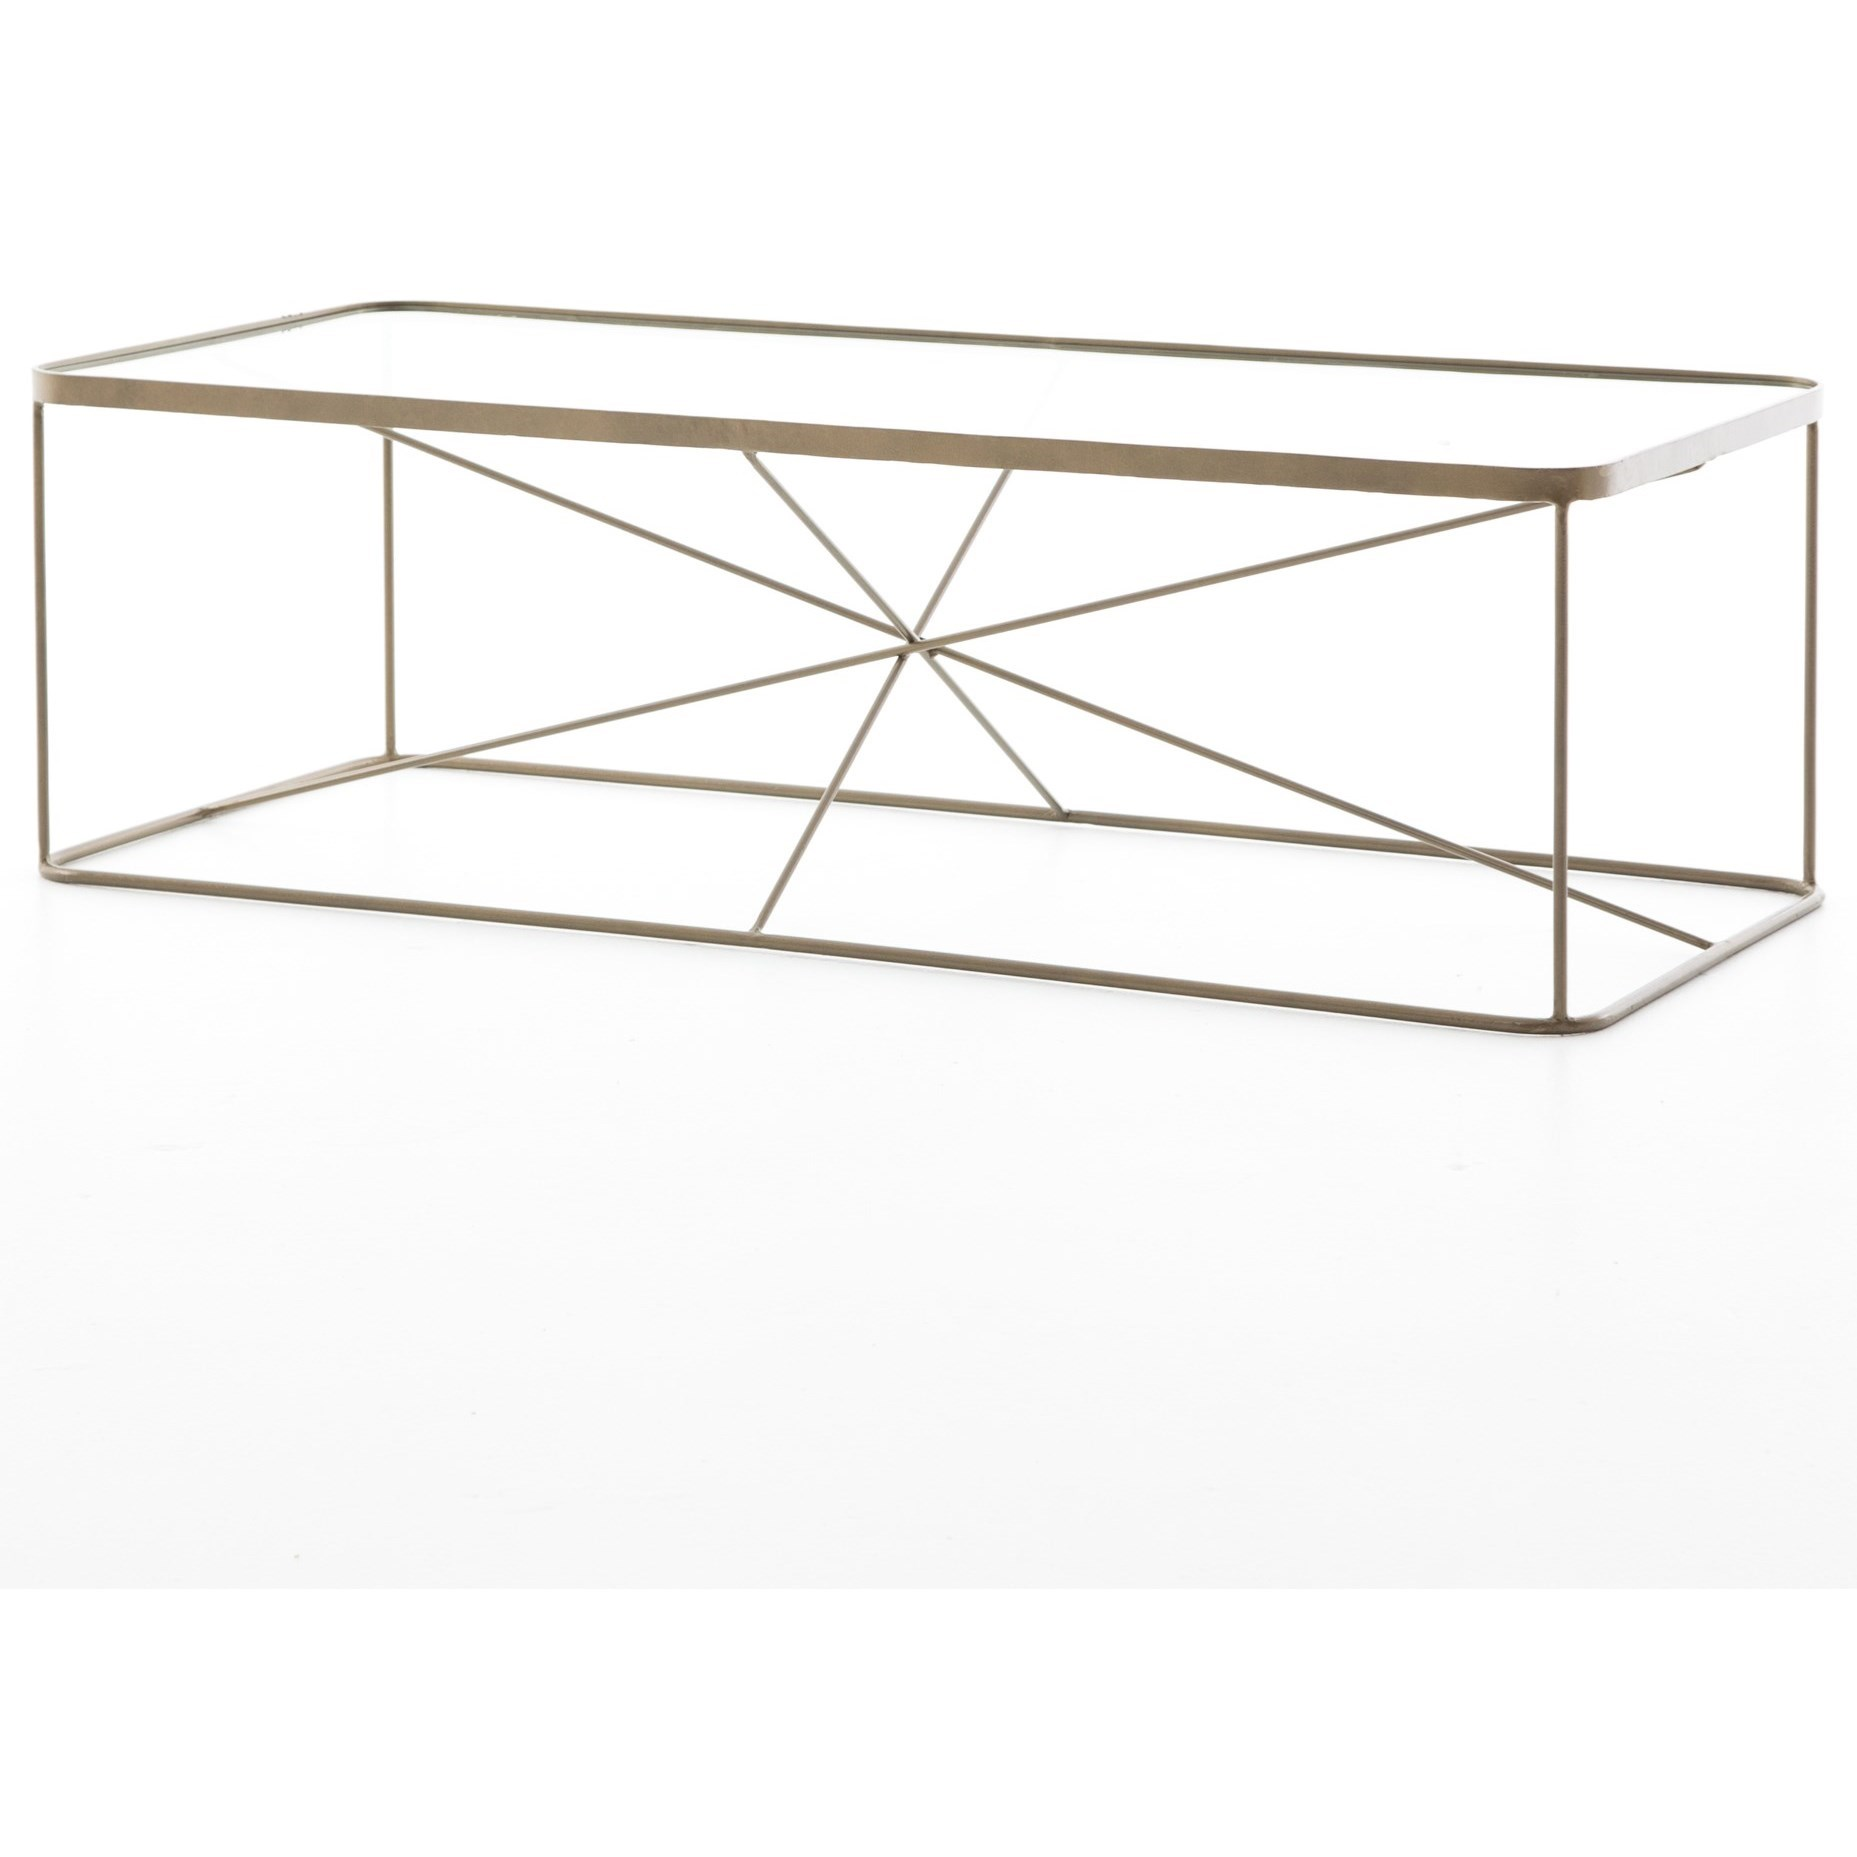 Lucas geometric coffee table by four hands wolf and gardiner lucas coffee table geotapseo Gallery